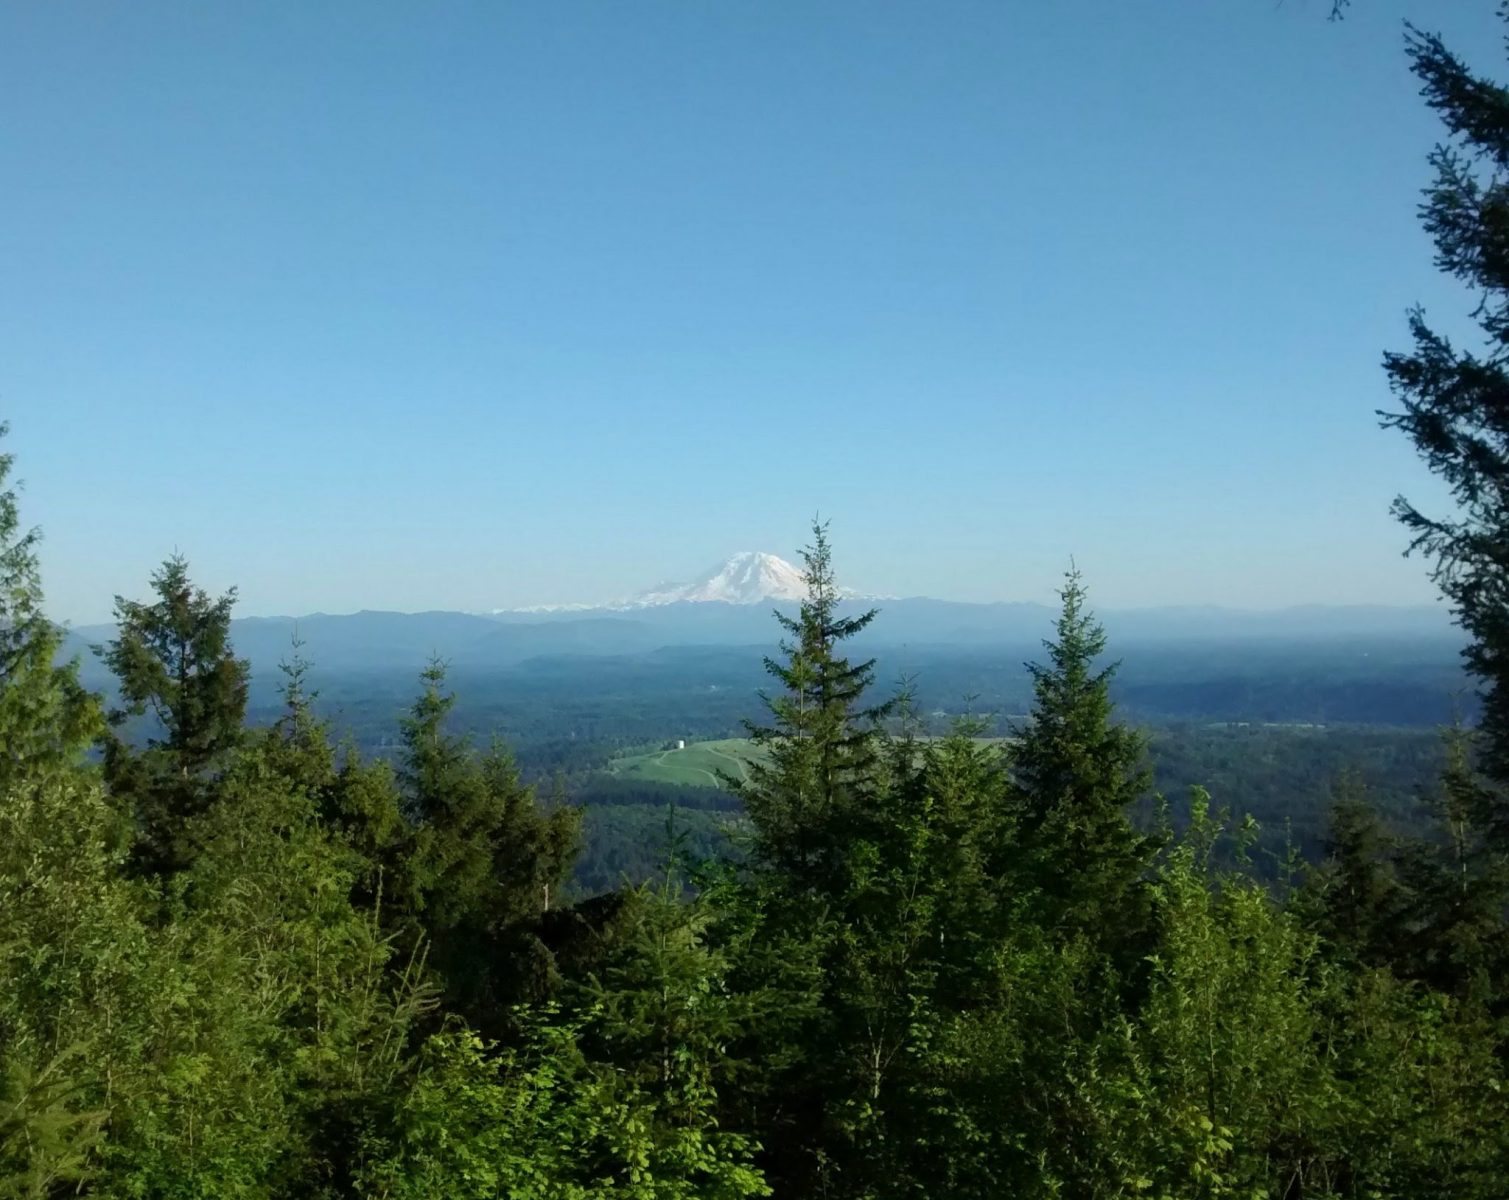 Mount Rainier in the distance with trees in the foreground and green valleys in between